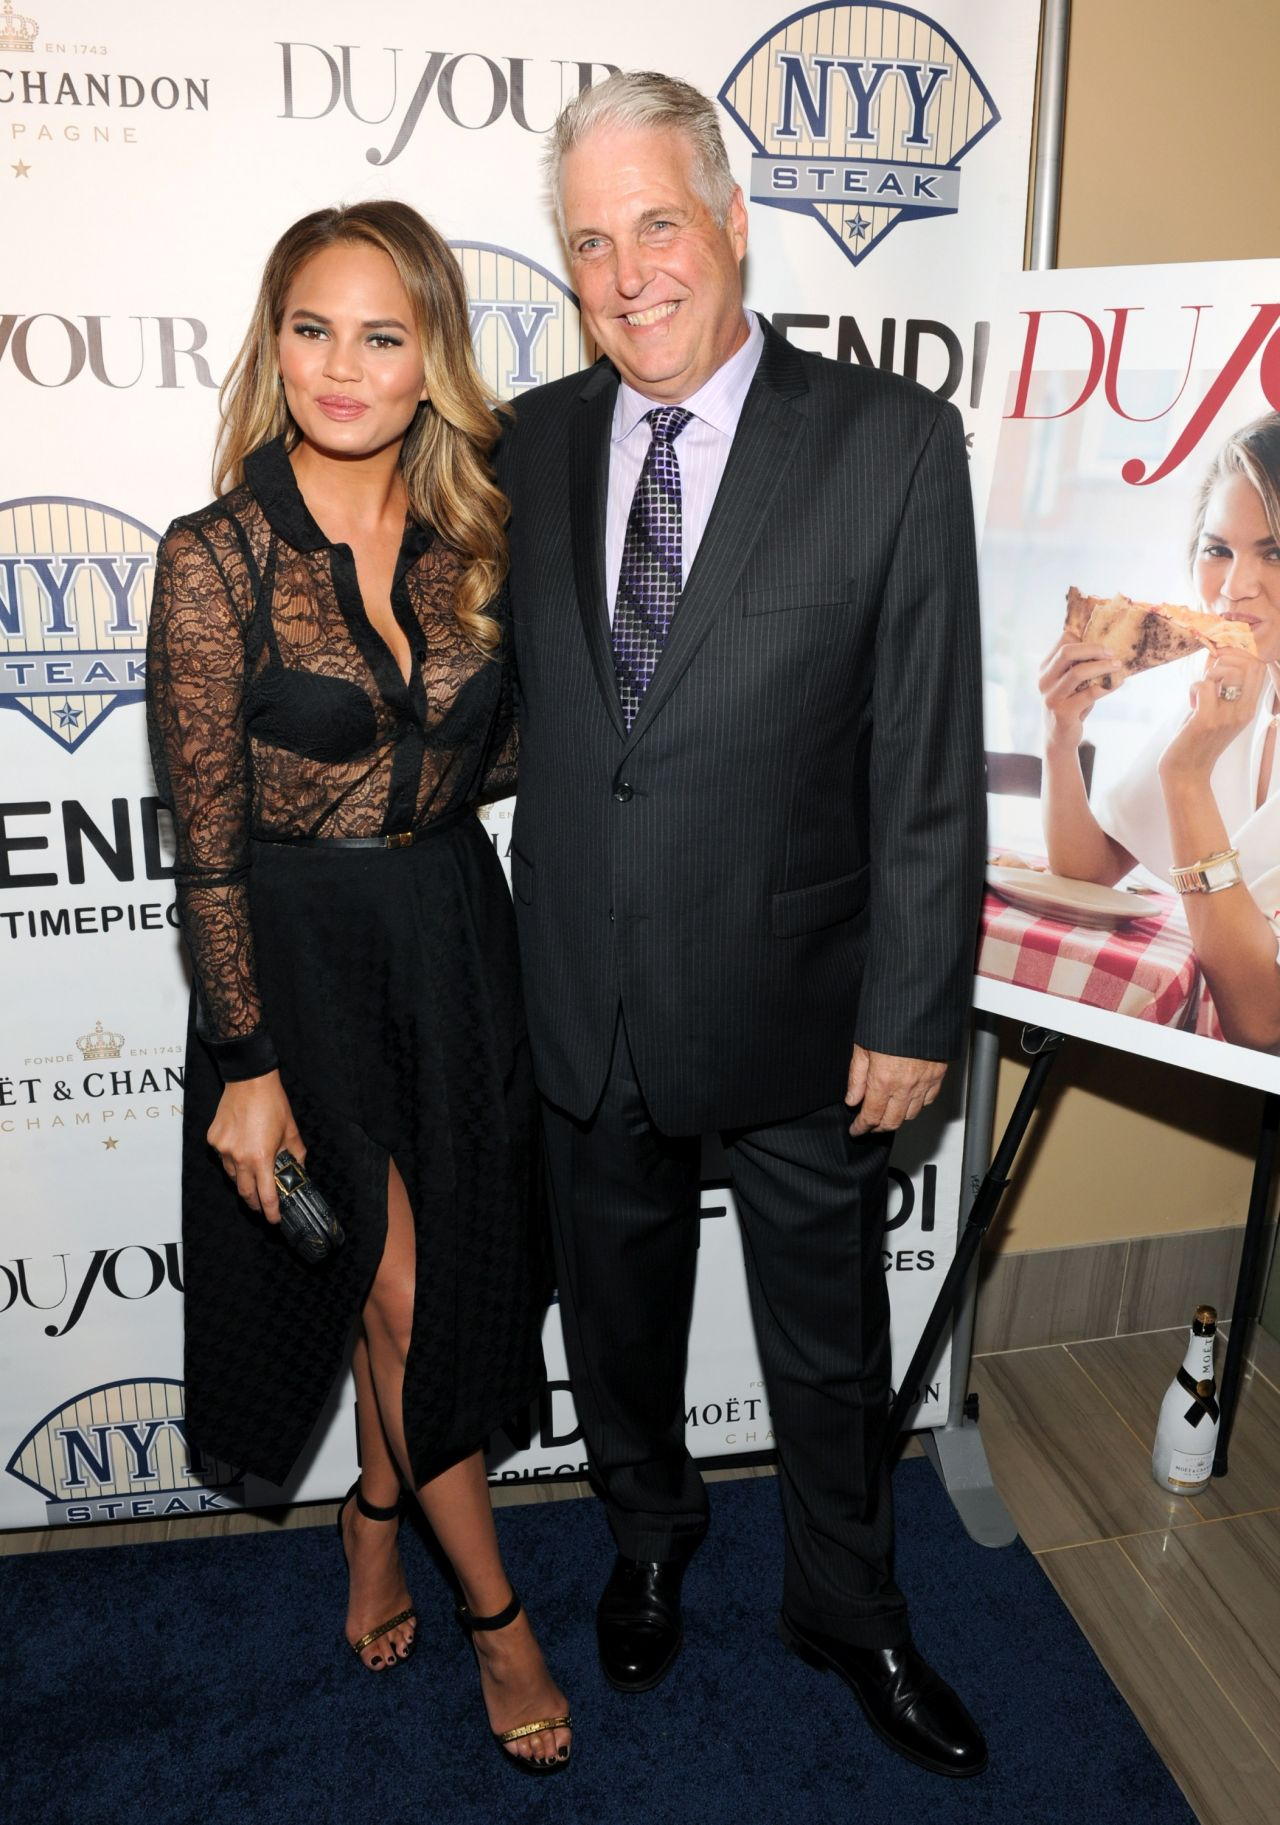 Chrissy Teigen - DuJour Magazine and NYY Steak Event - July 2014